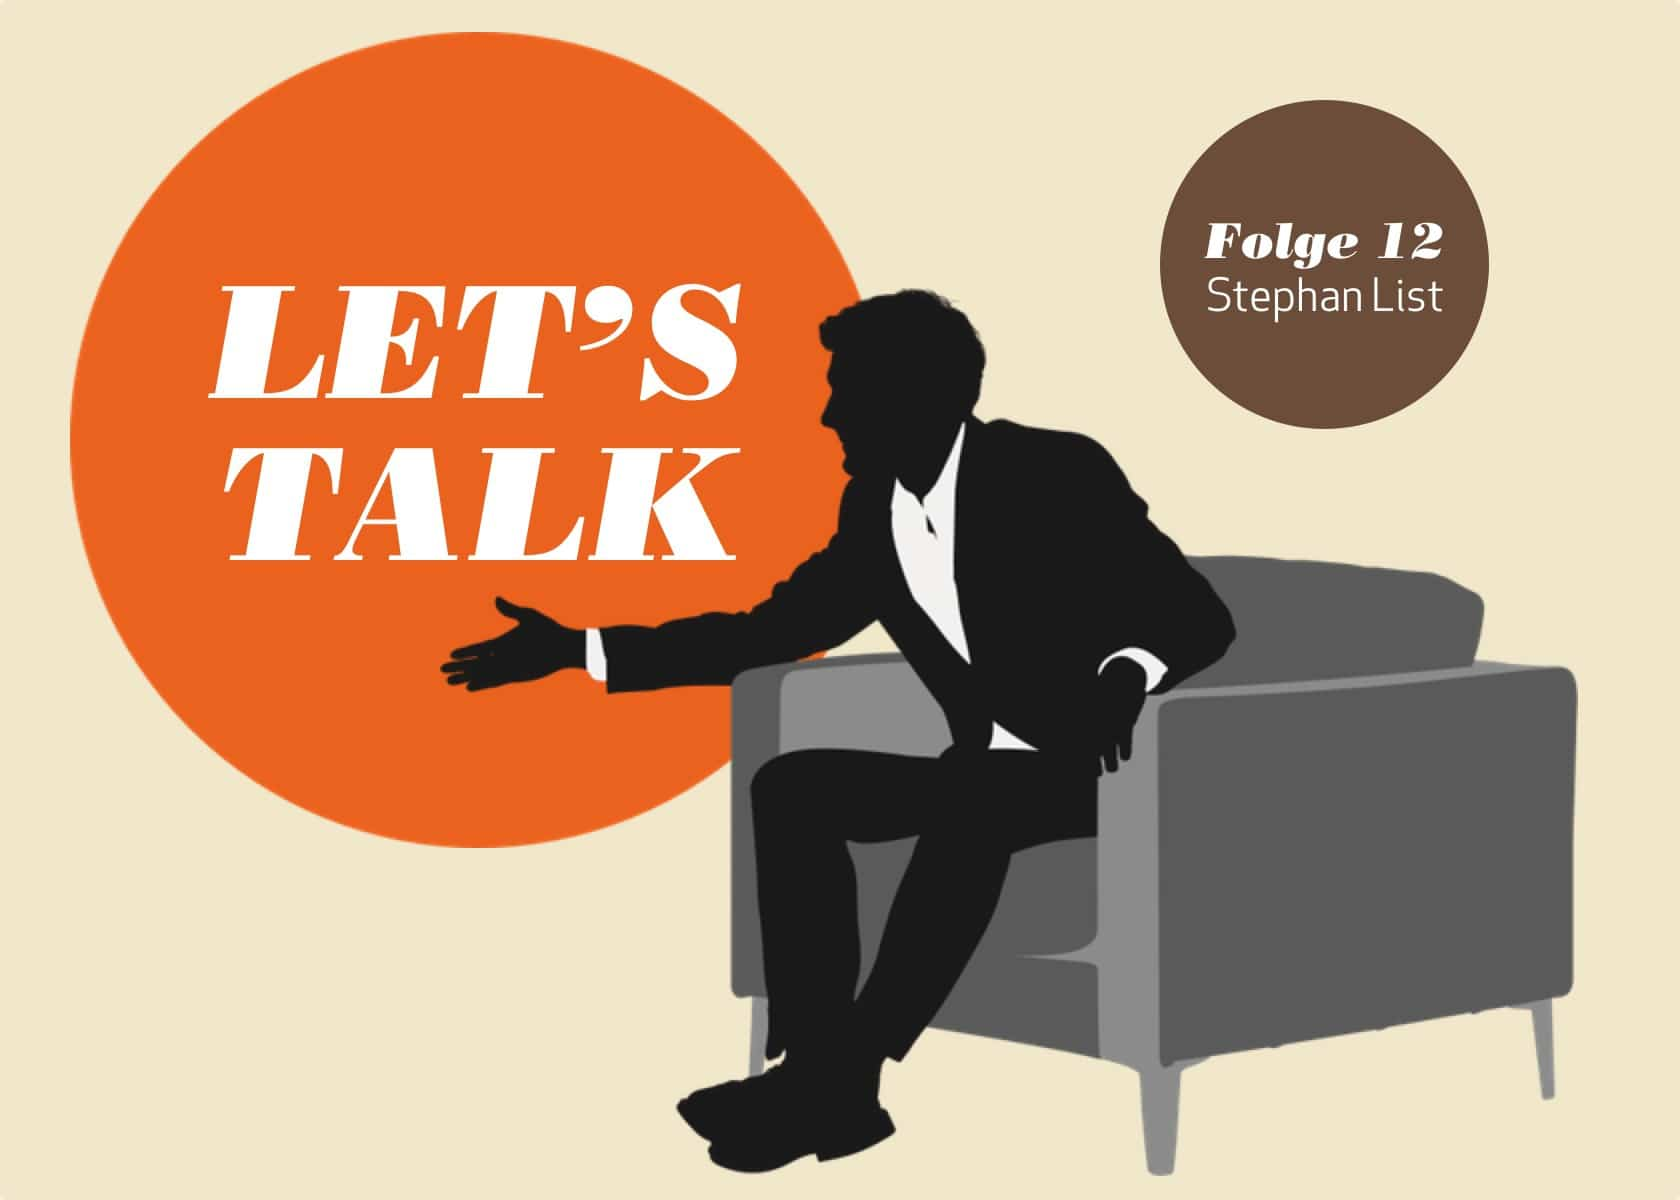 Let's Talk – Folge 12: Stephan List